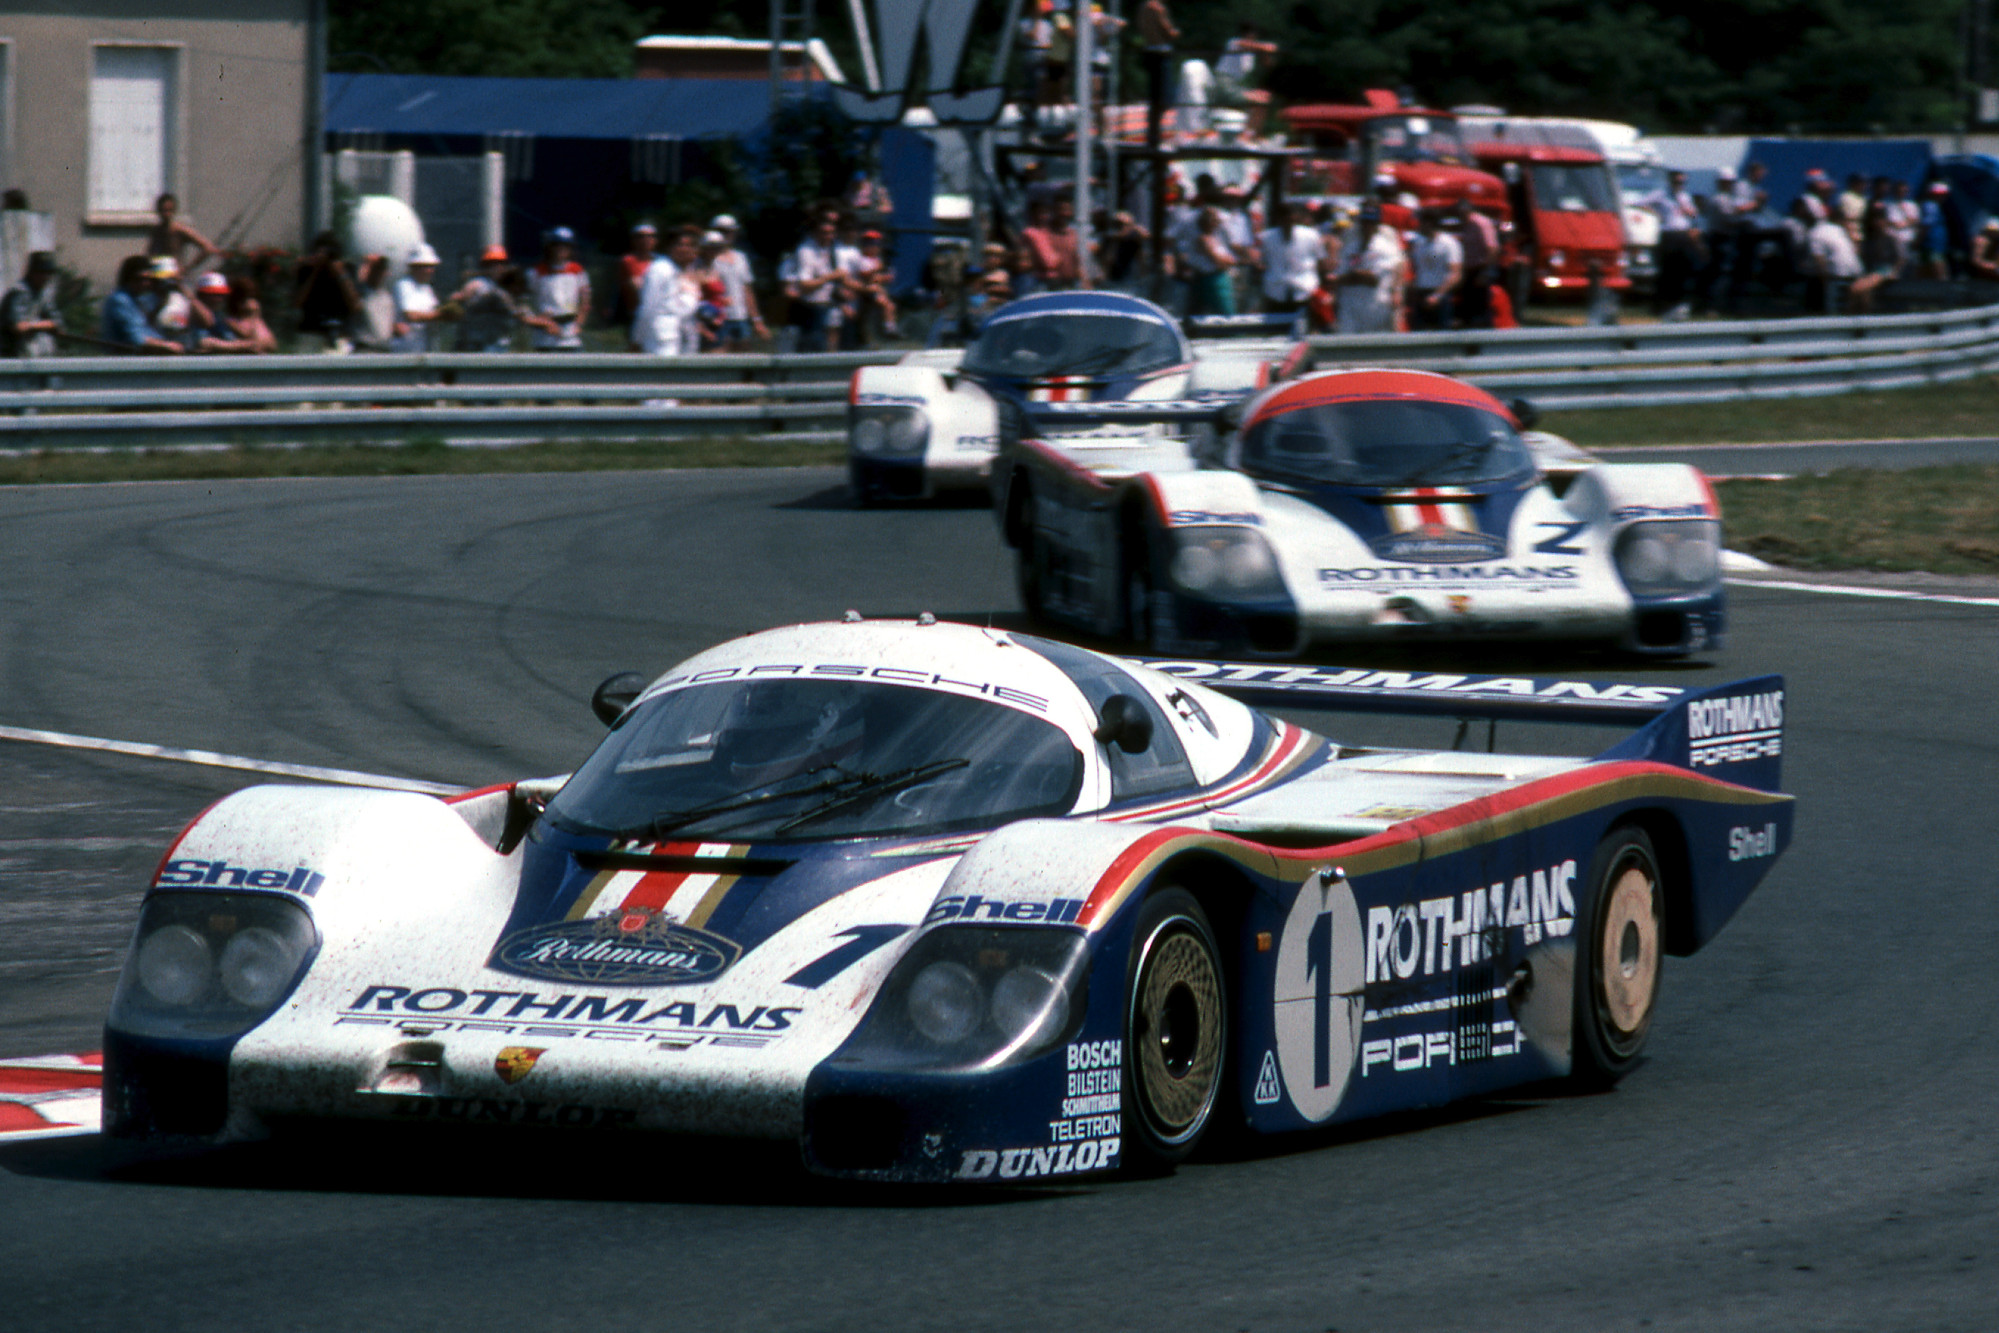 50 years of Porsche Le Mans winners: from the 917 to 919 Hybrid